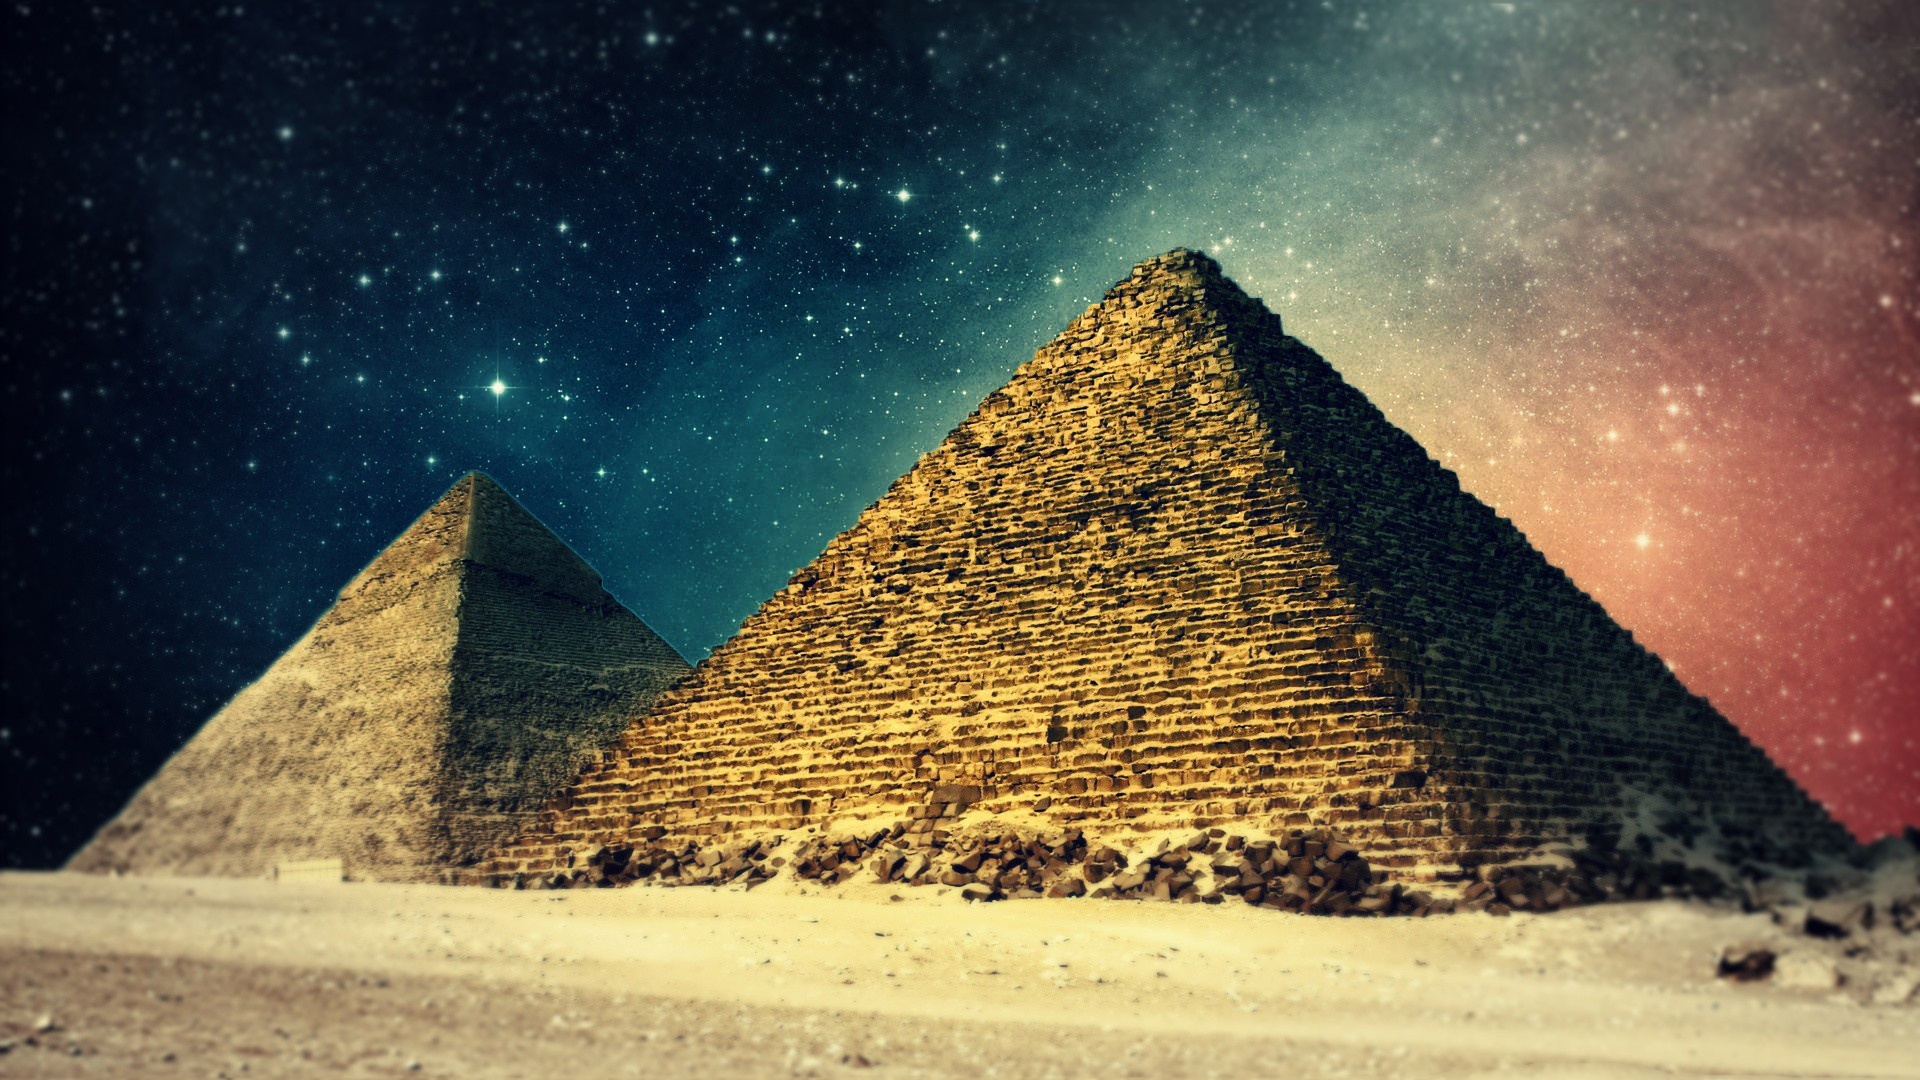 a-new-perspective-on-the-pyramids-wallpaper-wp3402081